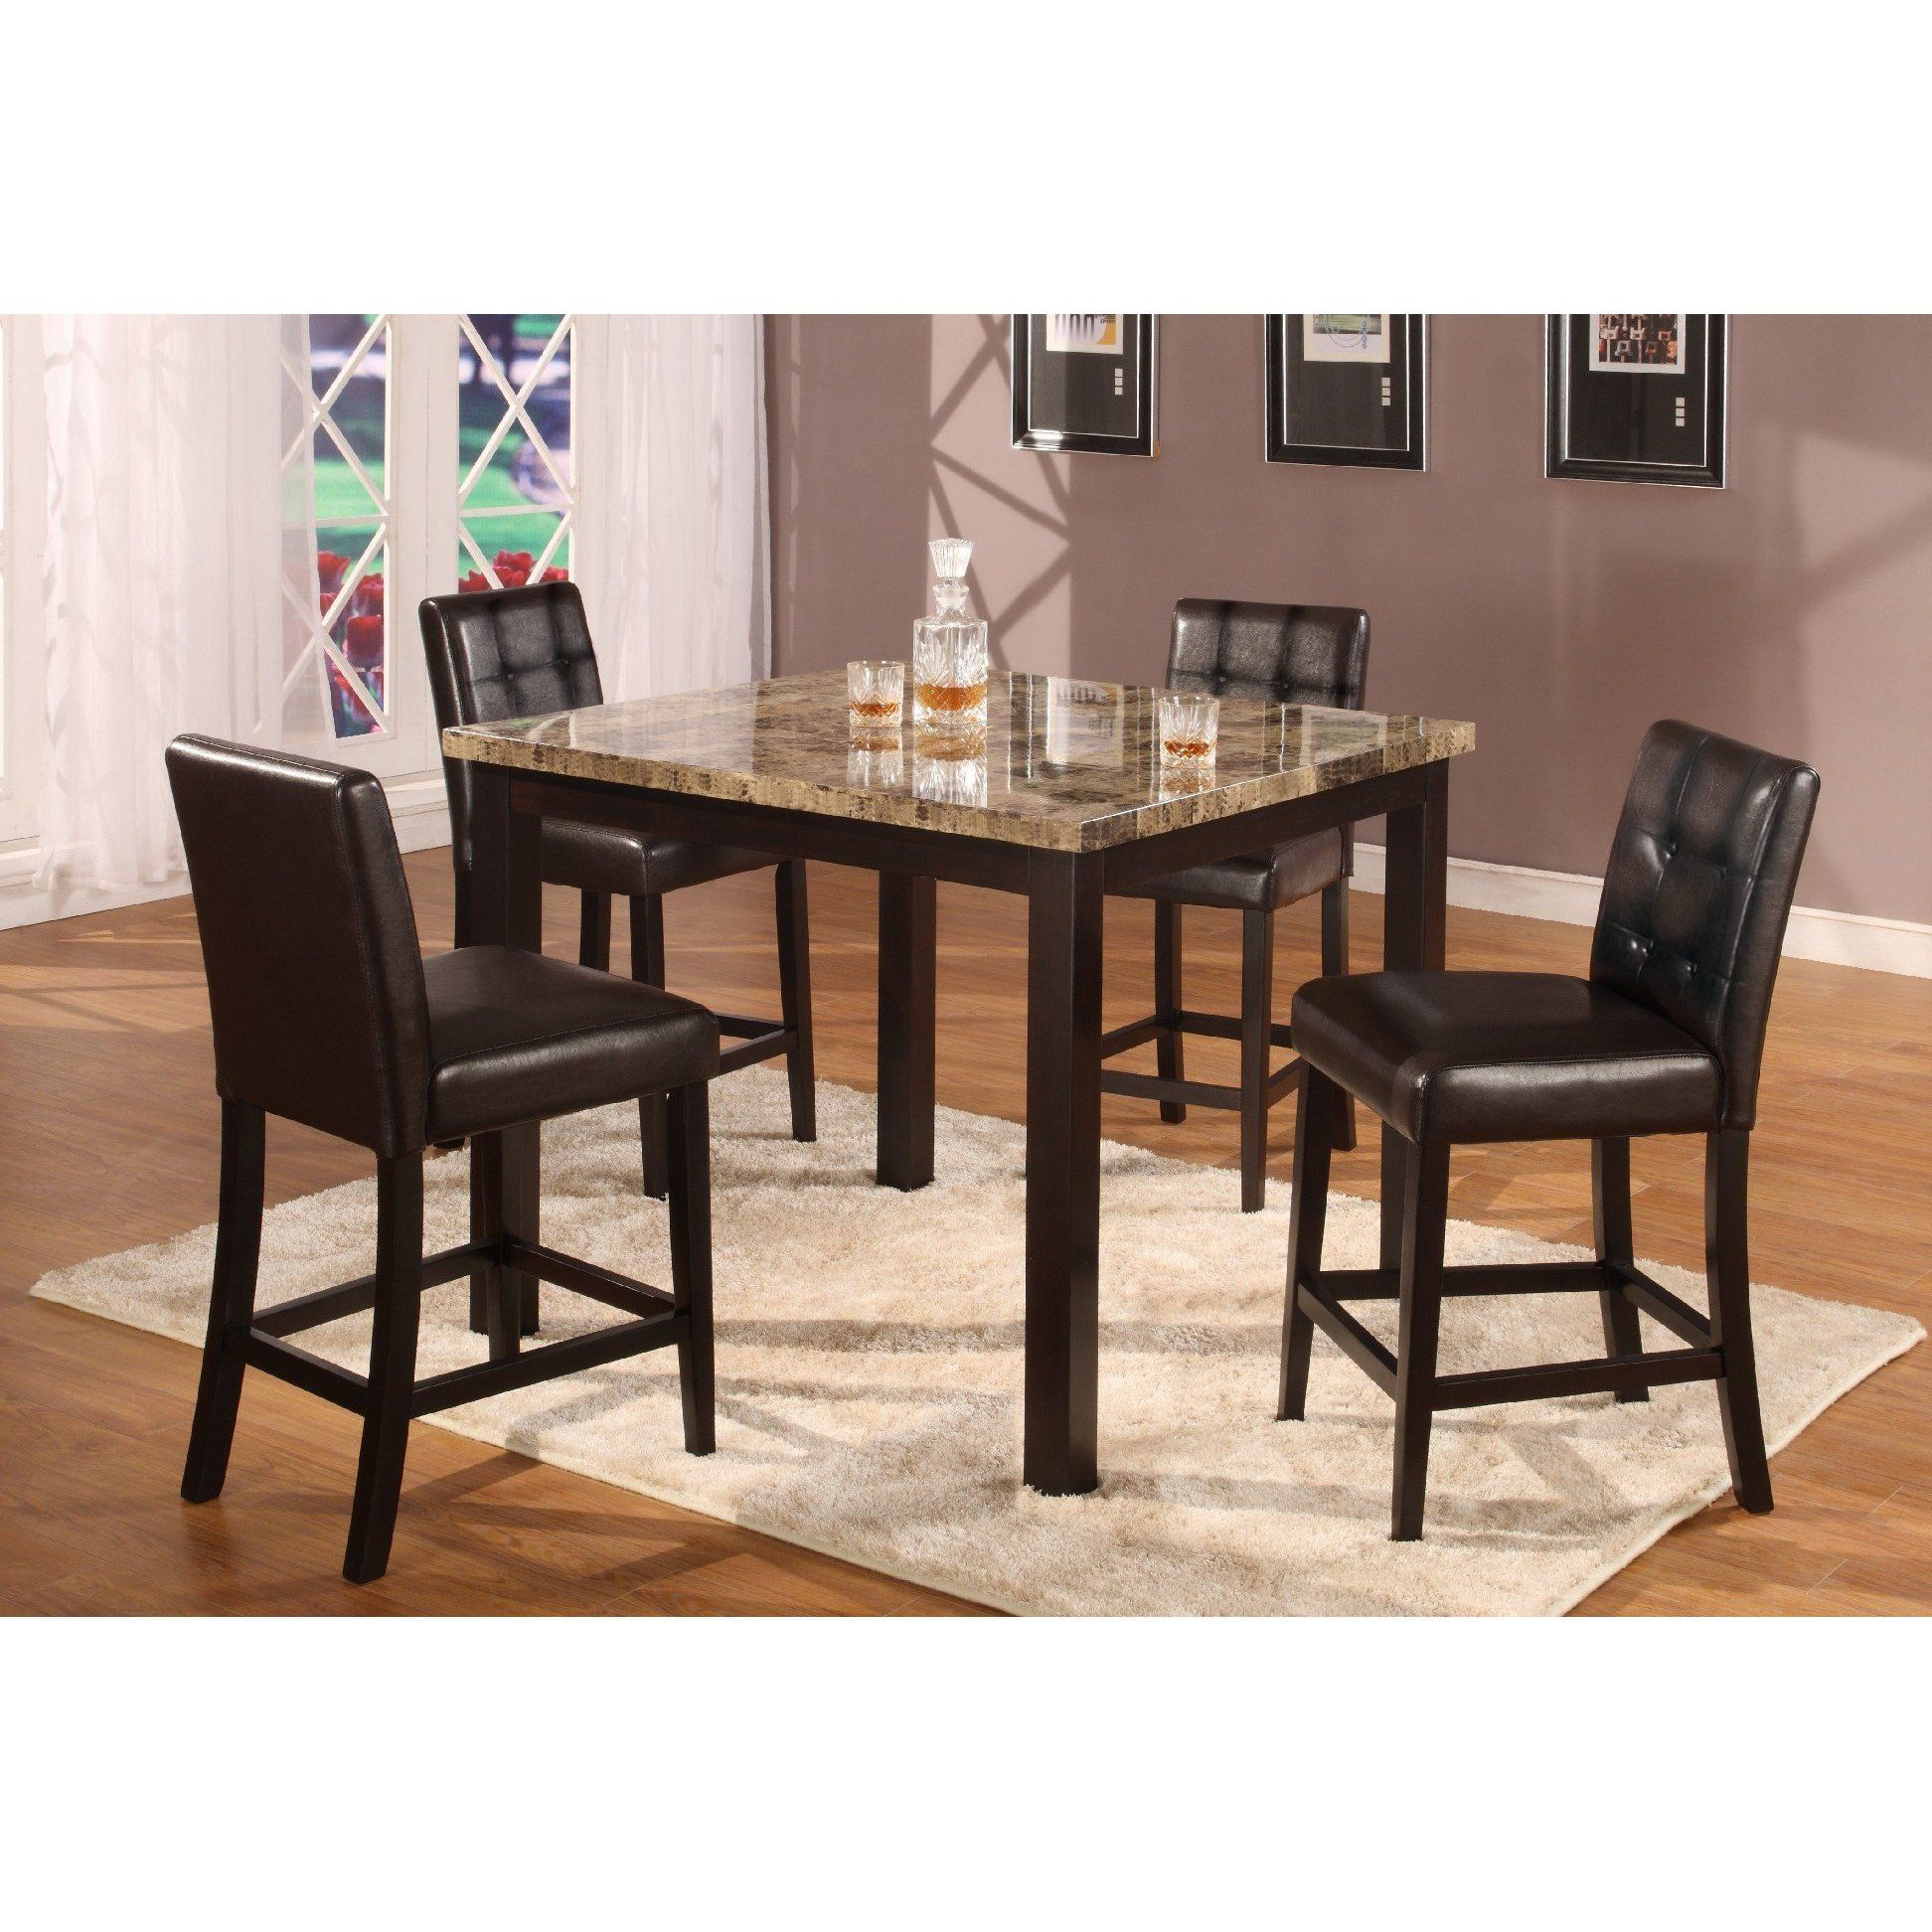 Marble Top Table With 4 Chairs Camping Chair Side 5pc Dark Artificial Counter Height Dinette